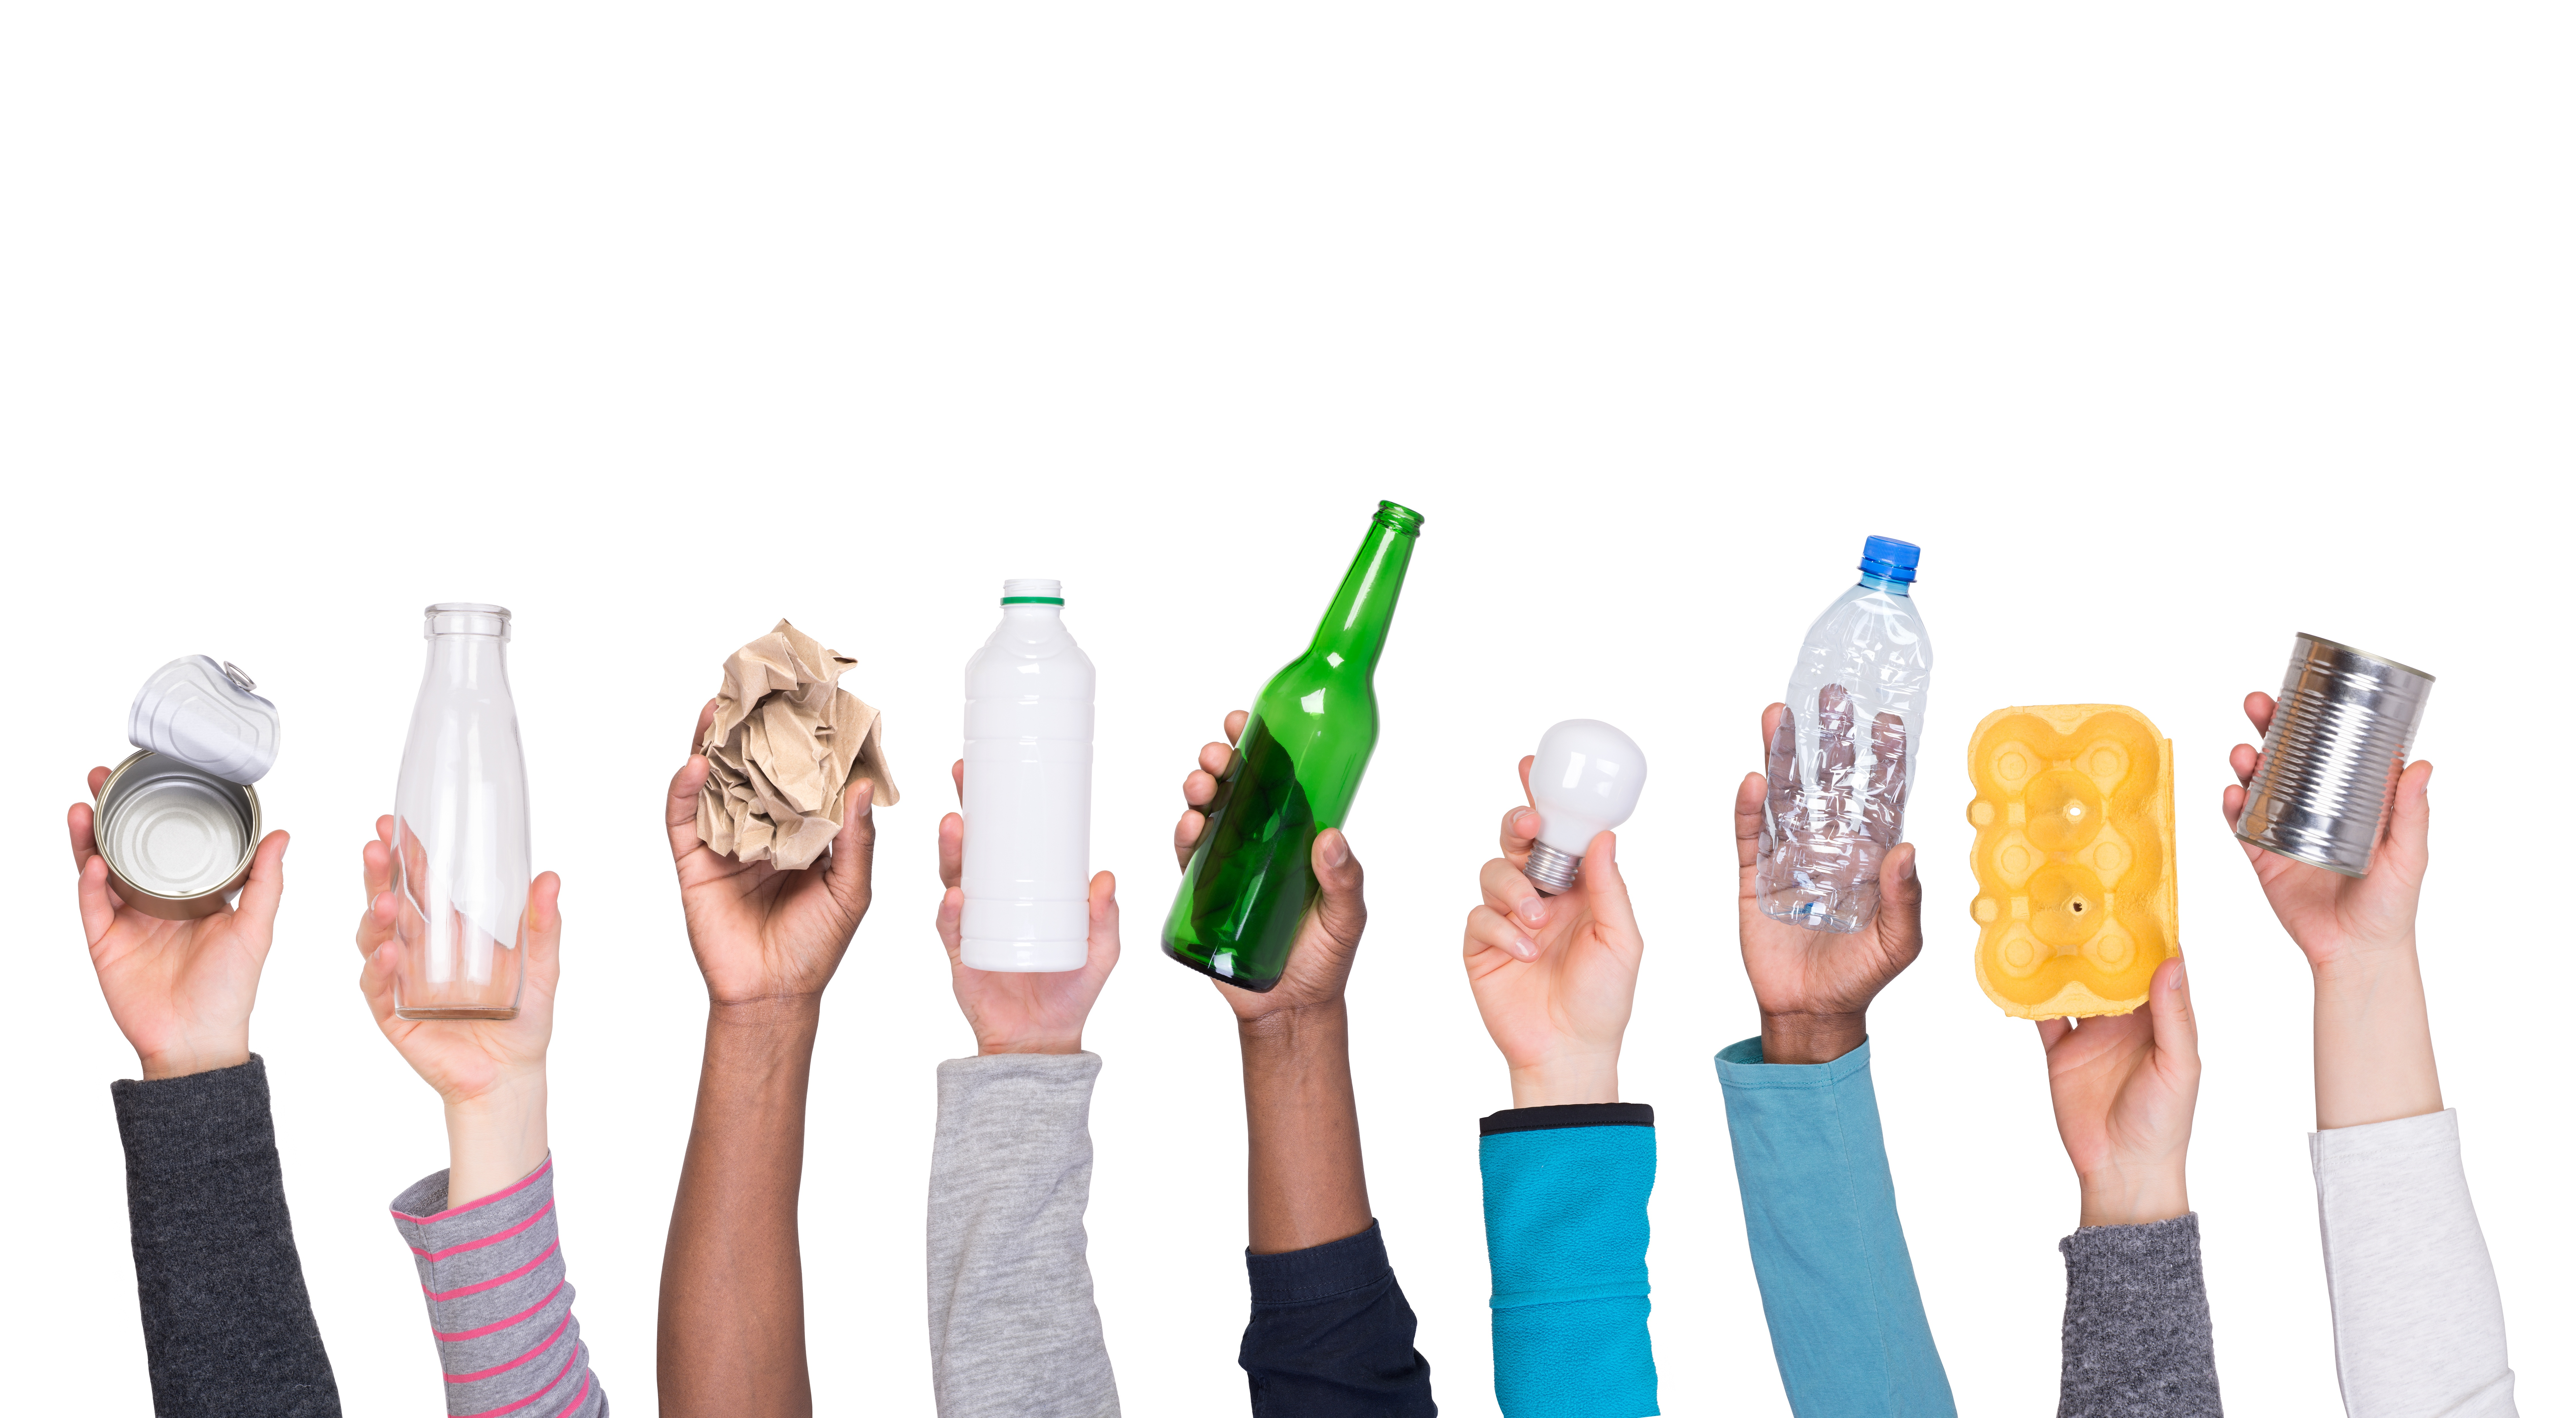 Evaluating packaging materials: Are they better than plastic?